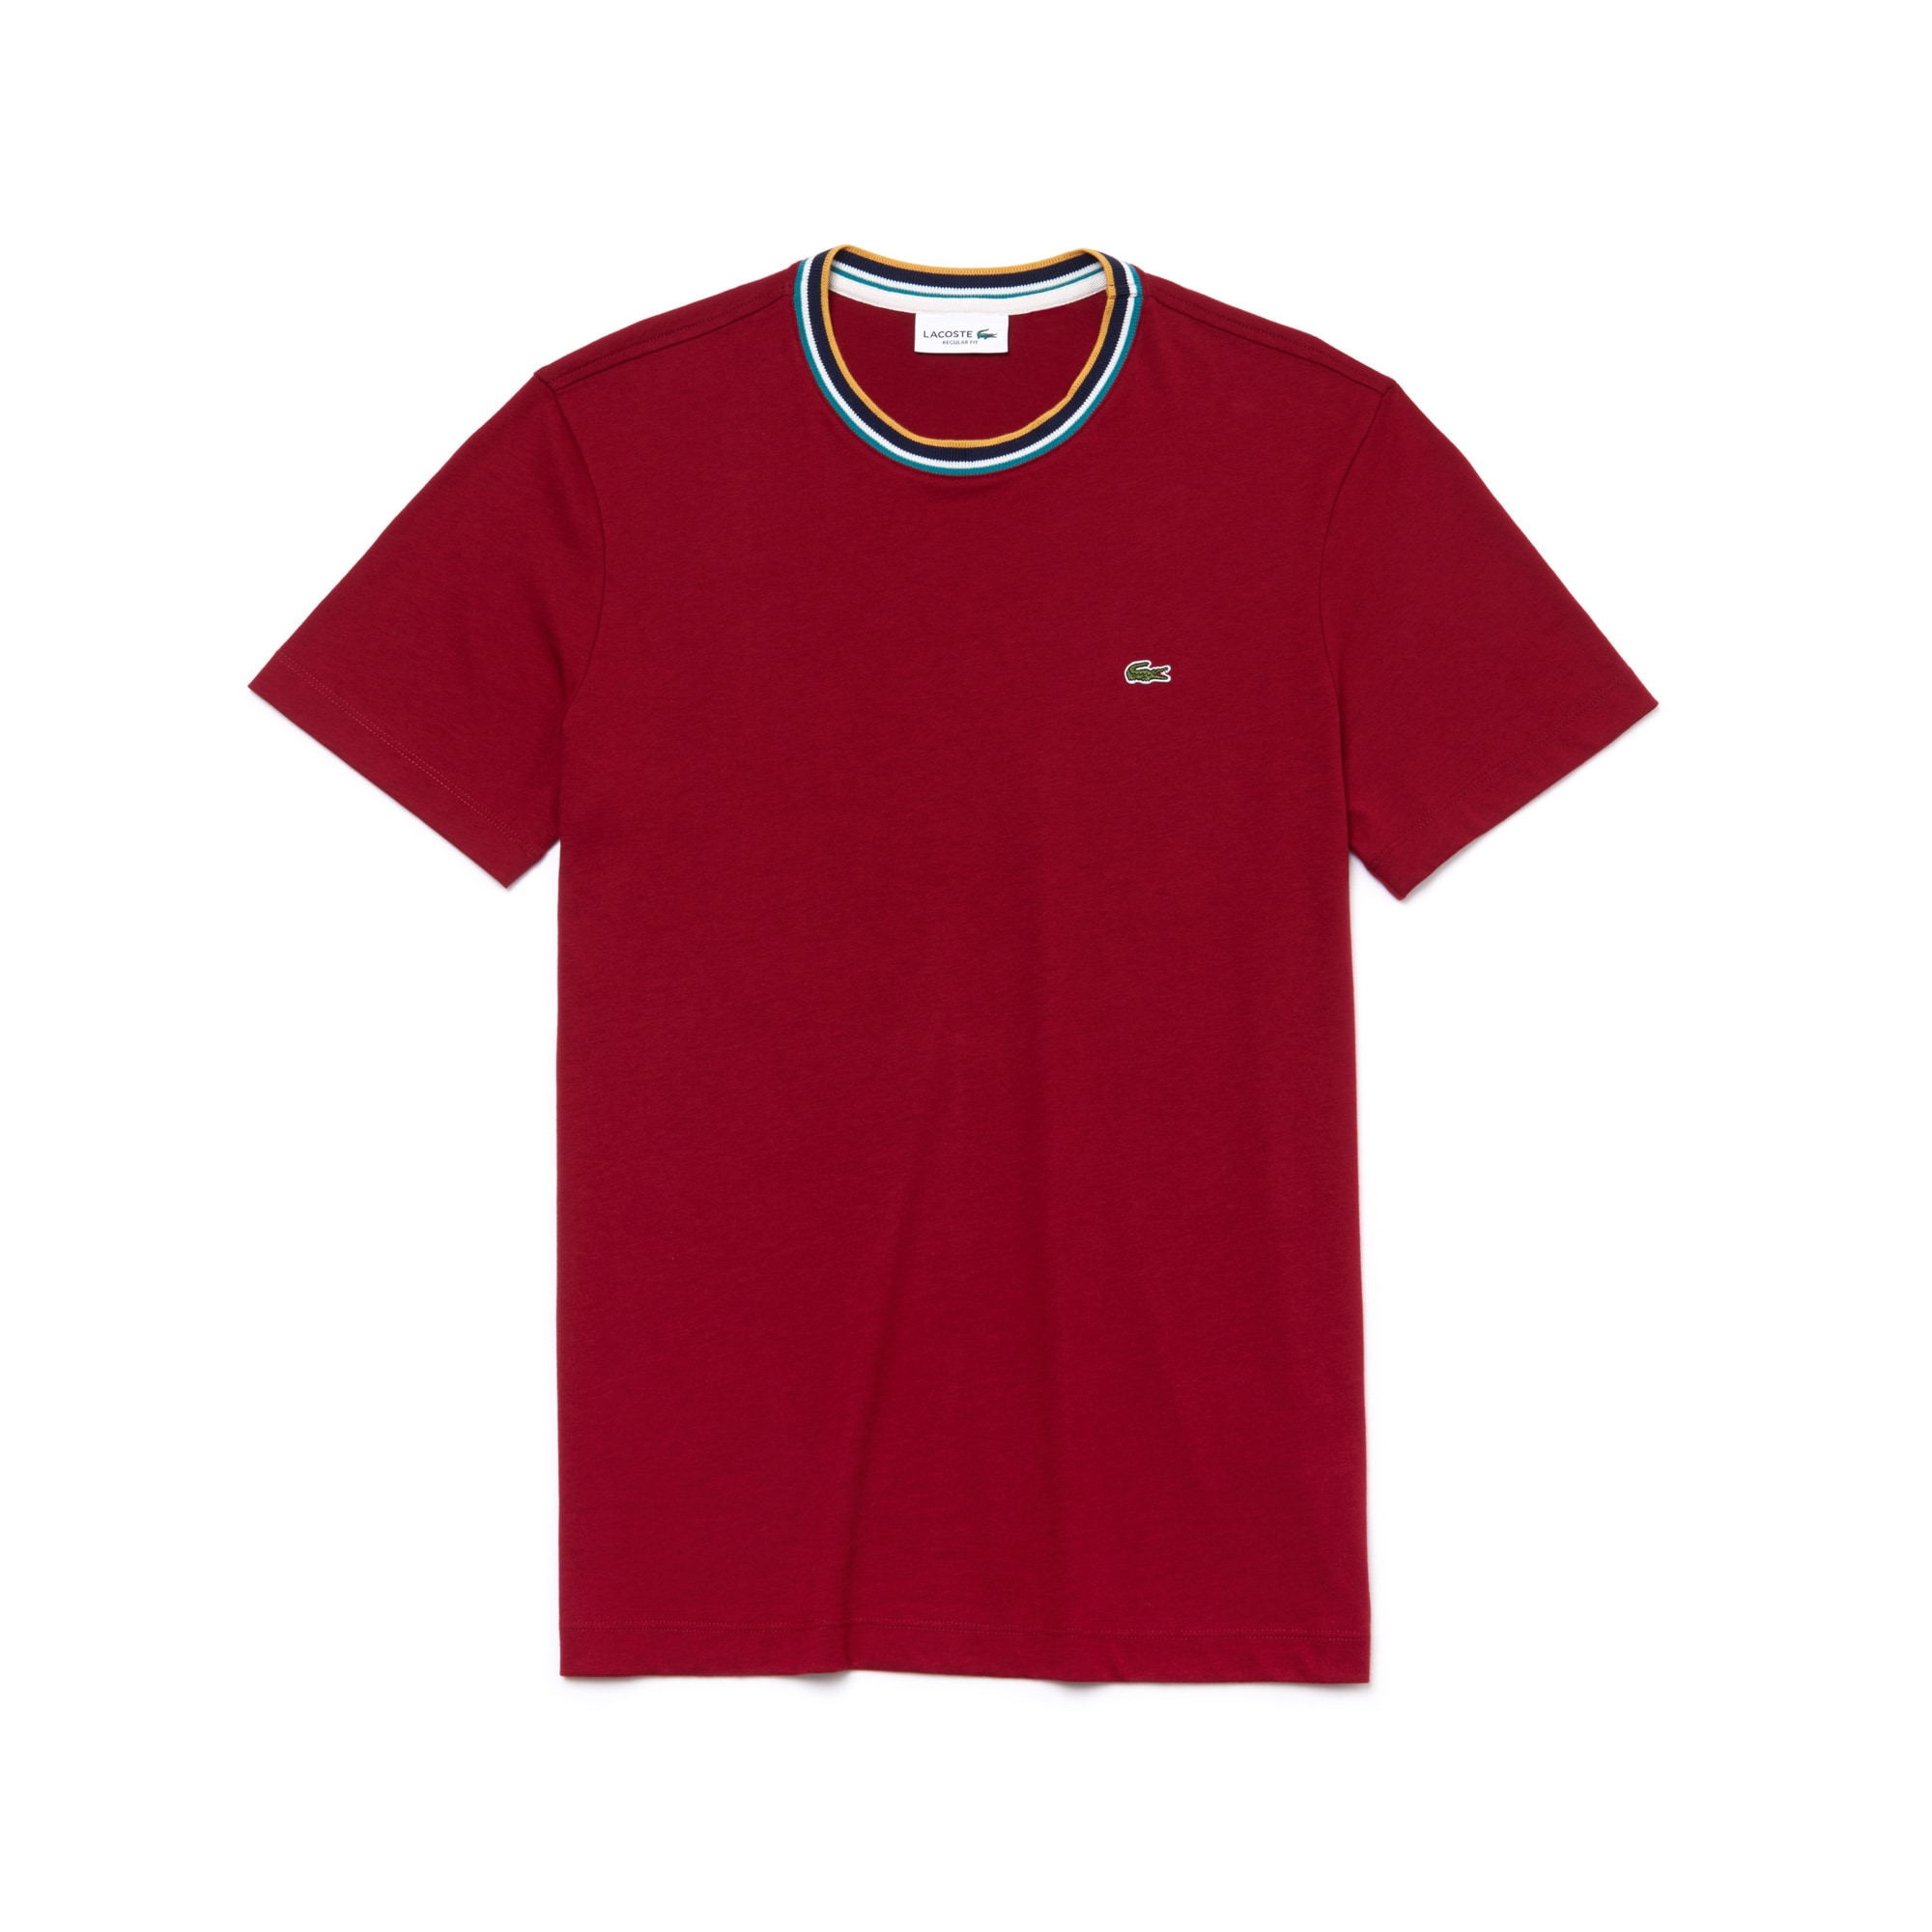 라코스테 Lacoste Mens Striped Ribbed Crew Neck Cotton Jersey T-shirt,bordeaux